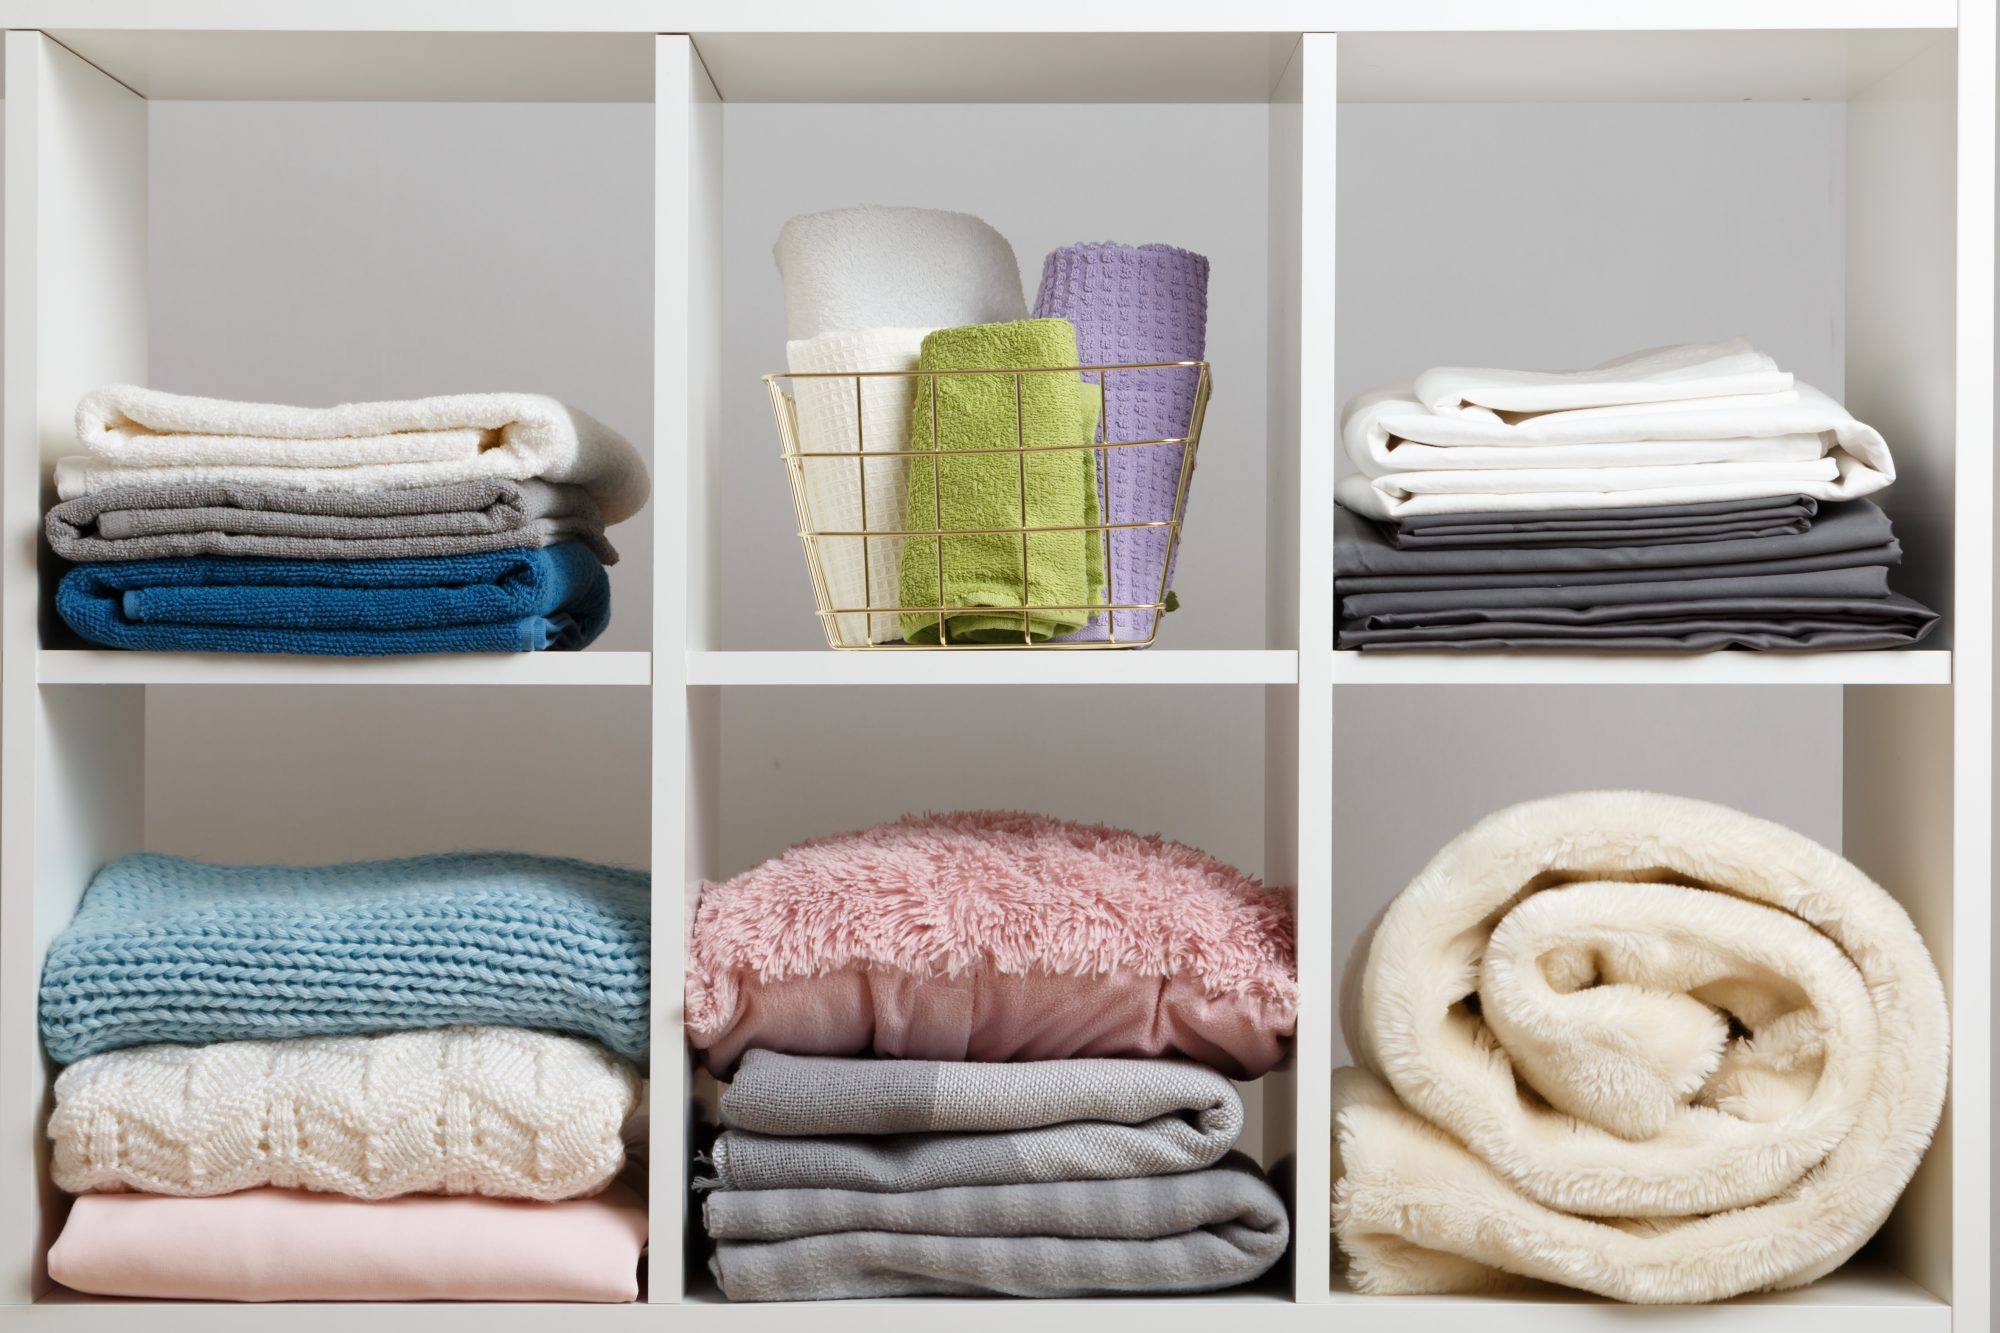 Things to Purge from Linen Closet, organized closet